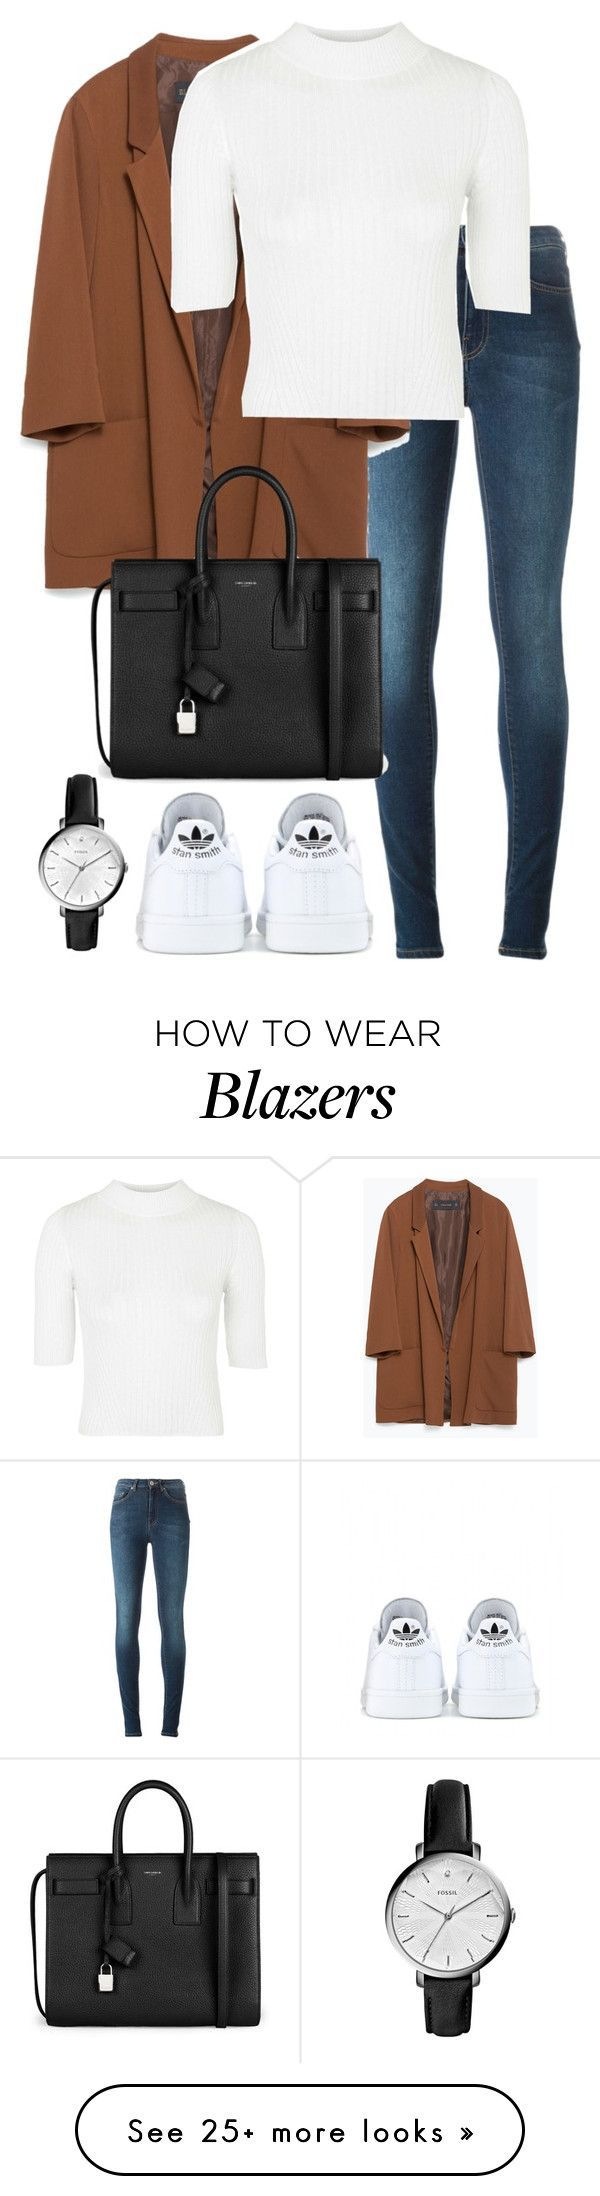 """Untitled #2342"" by elenaday on Polyvore featuring Acne Studios, Zara, Topshop, adidas, Yves Saint Laurent and FOSSIL"